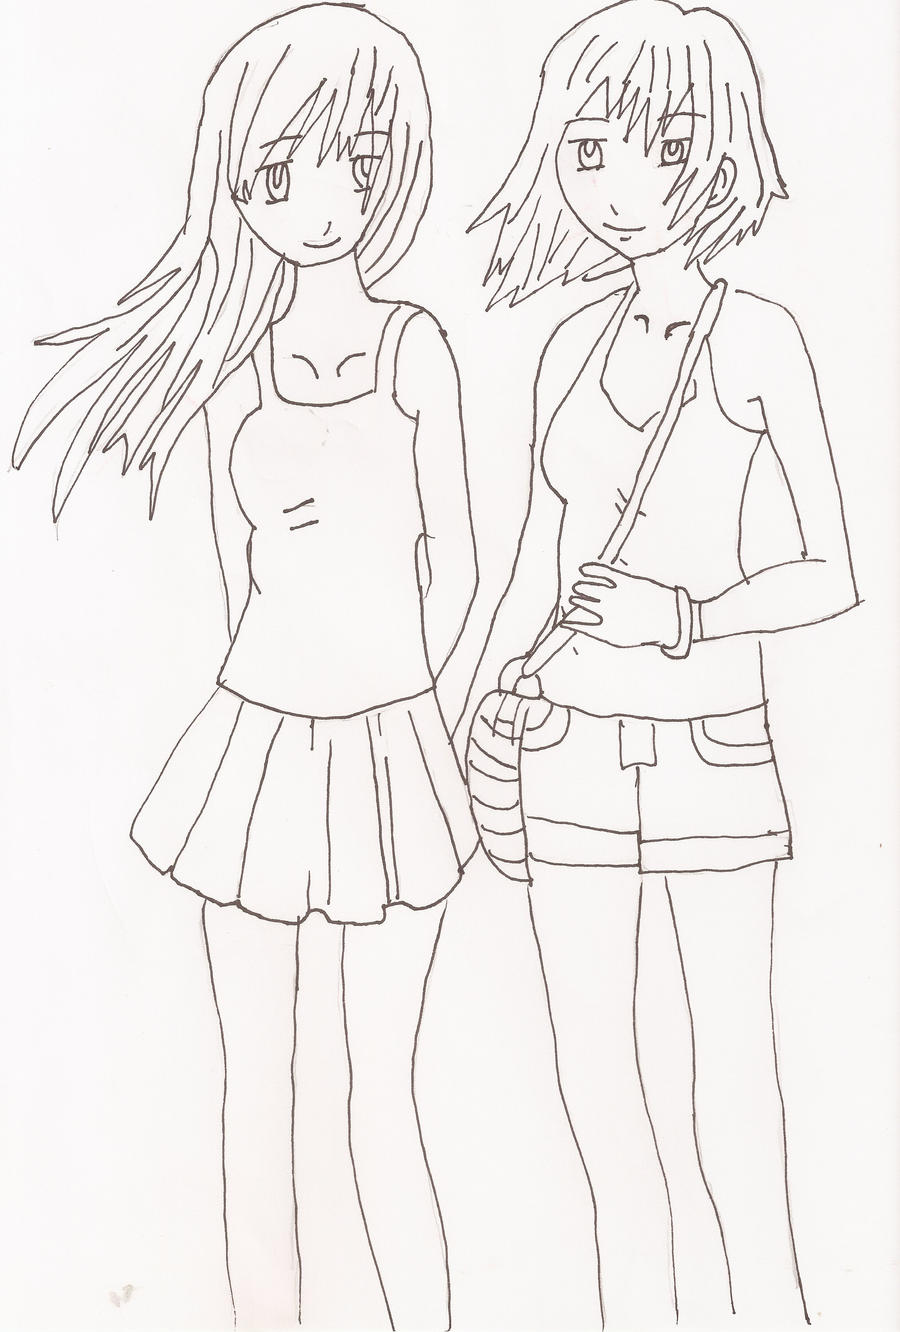 Manga And Anime Traditional Media Drawings - Quoteko Two Best Friends Hugging Drawing